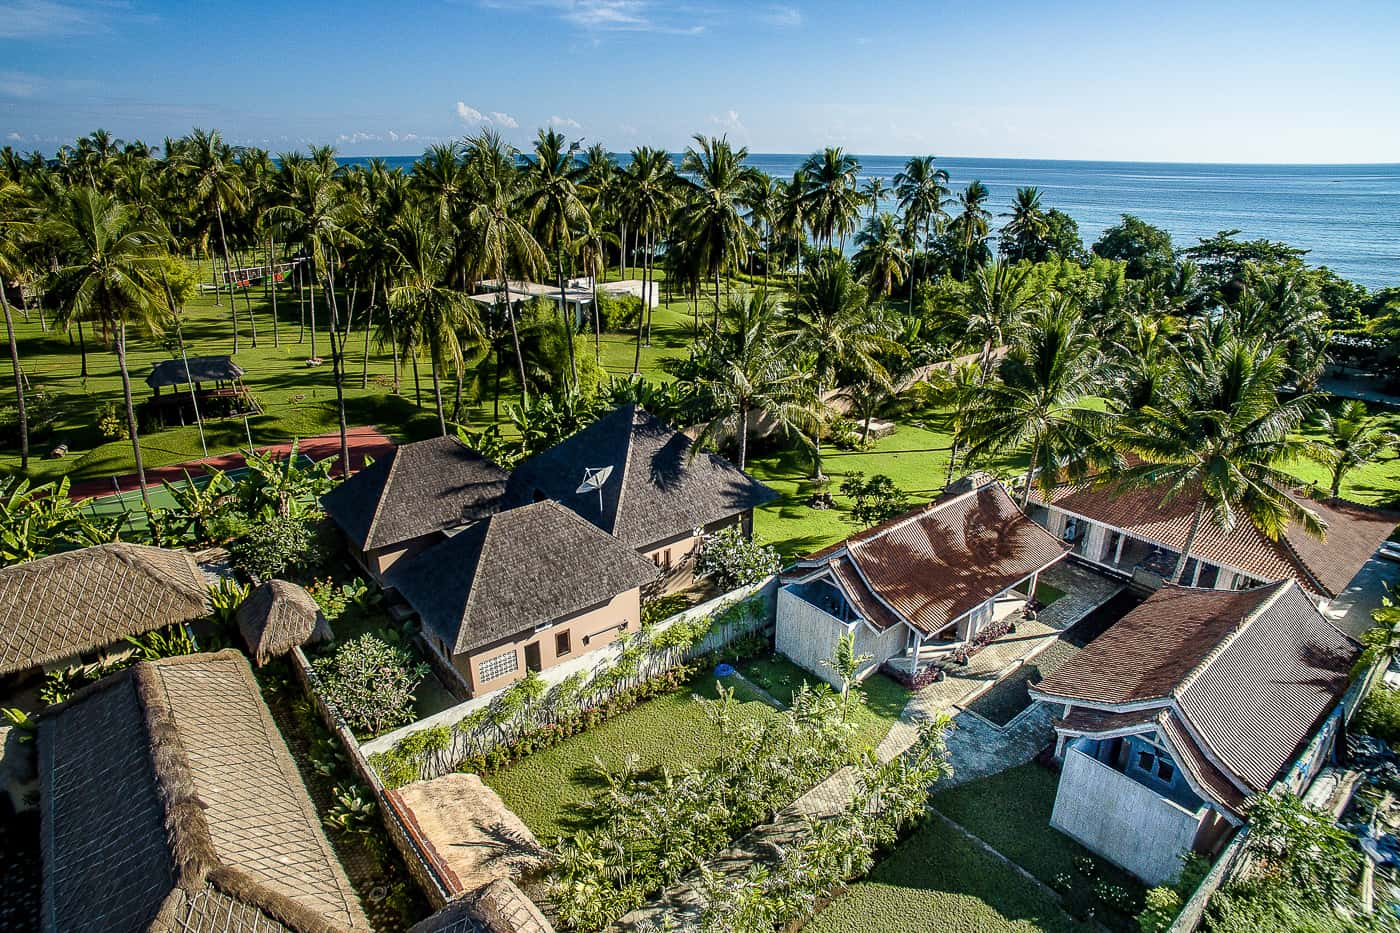 aerial image from The Beach Villa Lombok